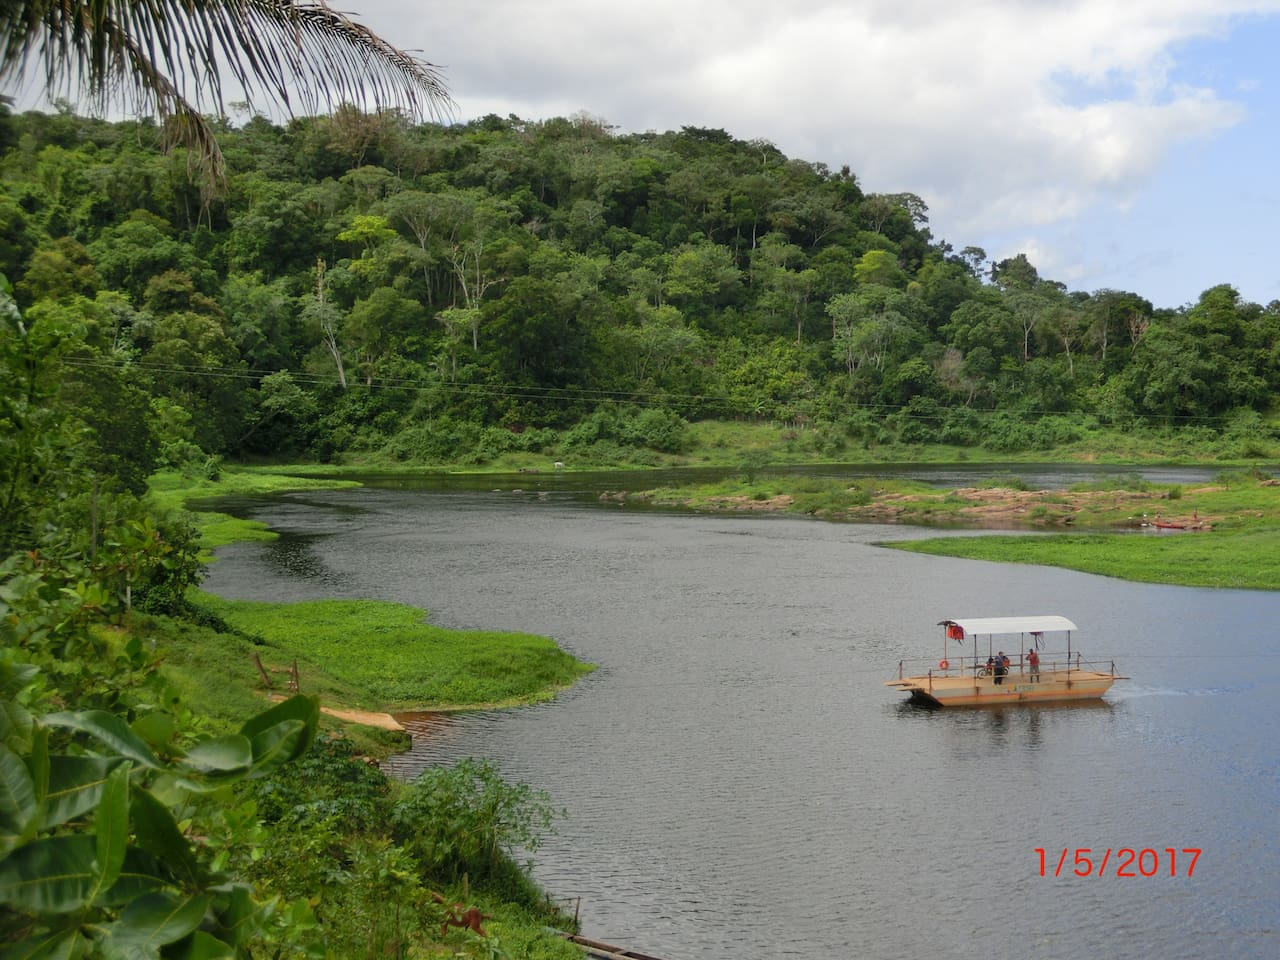 The river ferry between Fazenda Taboquinhas and the Taboquinhas village.